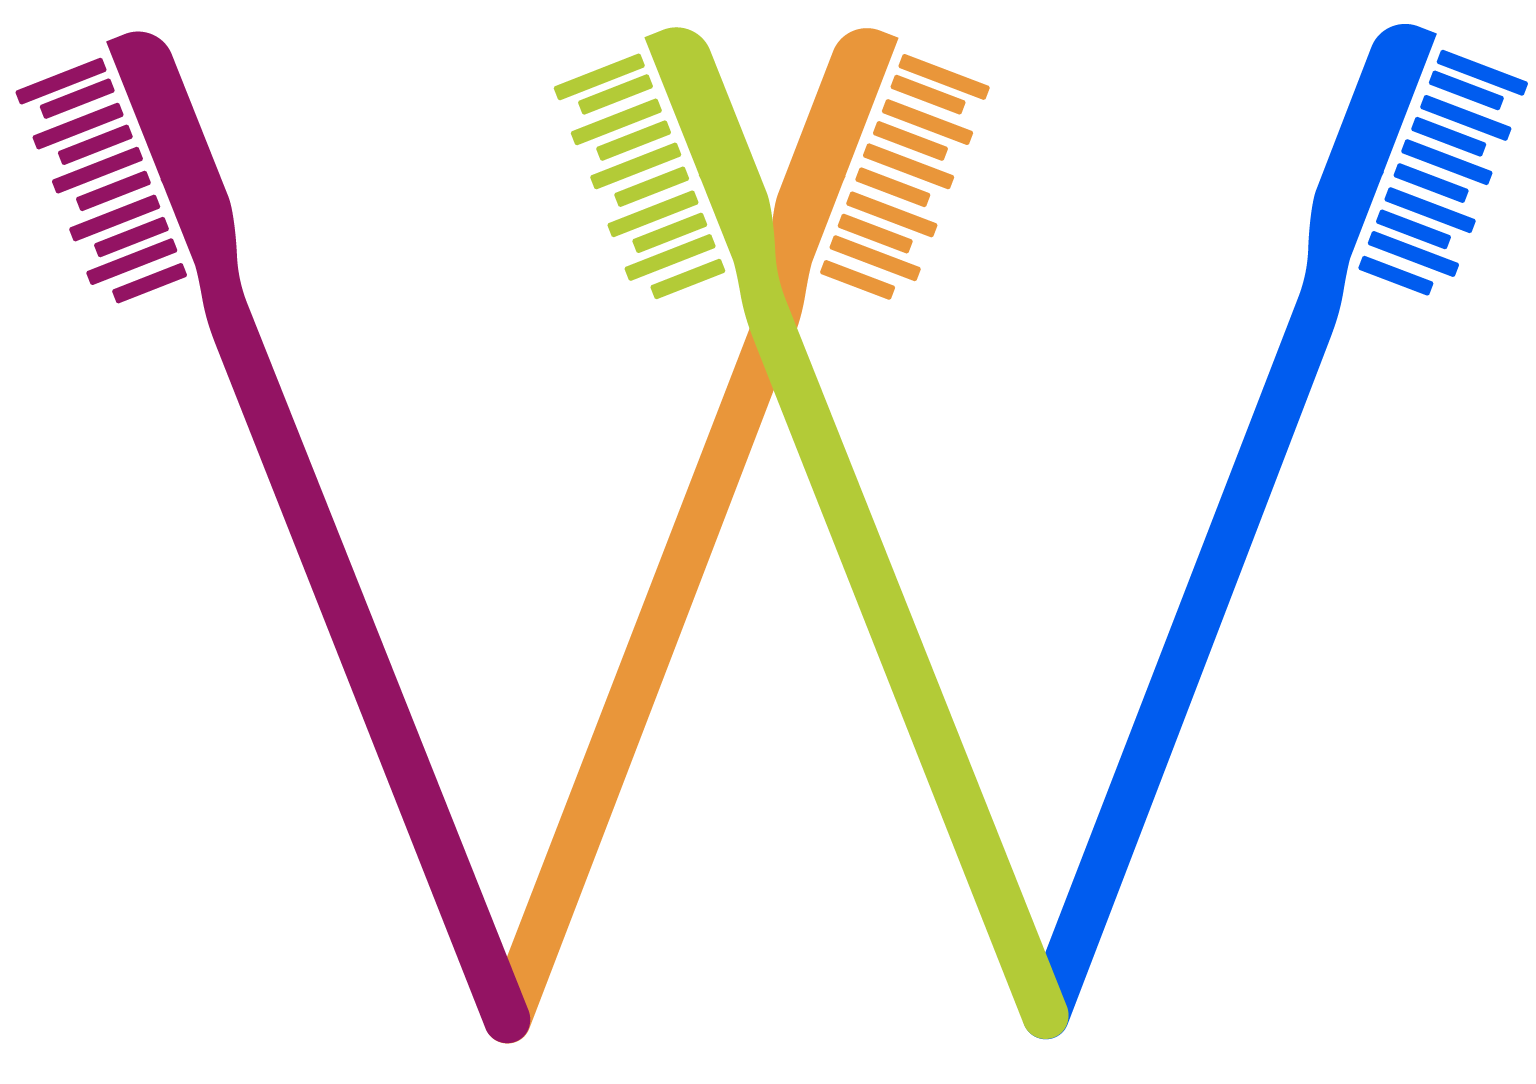 Williamson Dental toothbrush logo